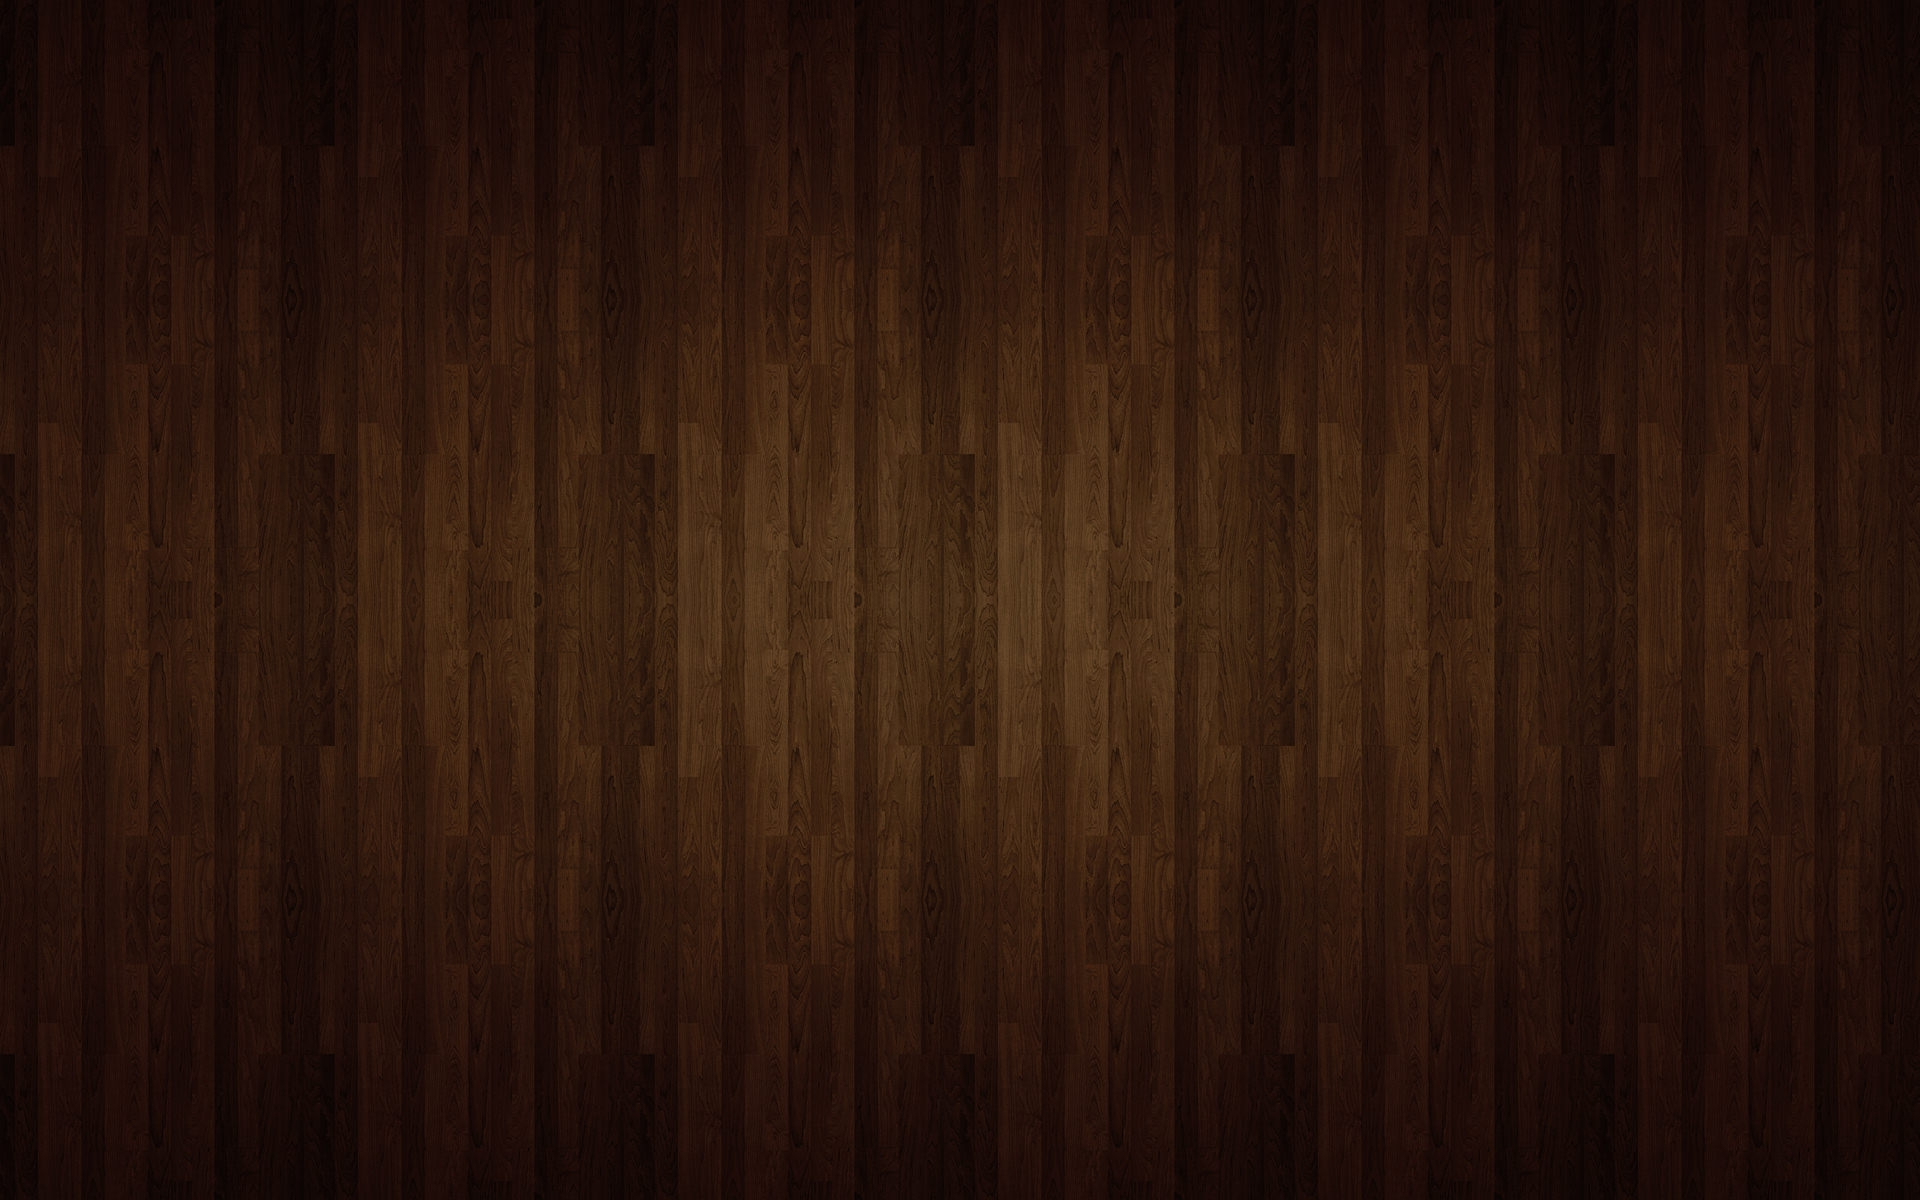 20 dark wood backgrounds hq backgrounds freecreatives. Black Bedroom Furniture Sets. Home Design Ideas